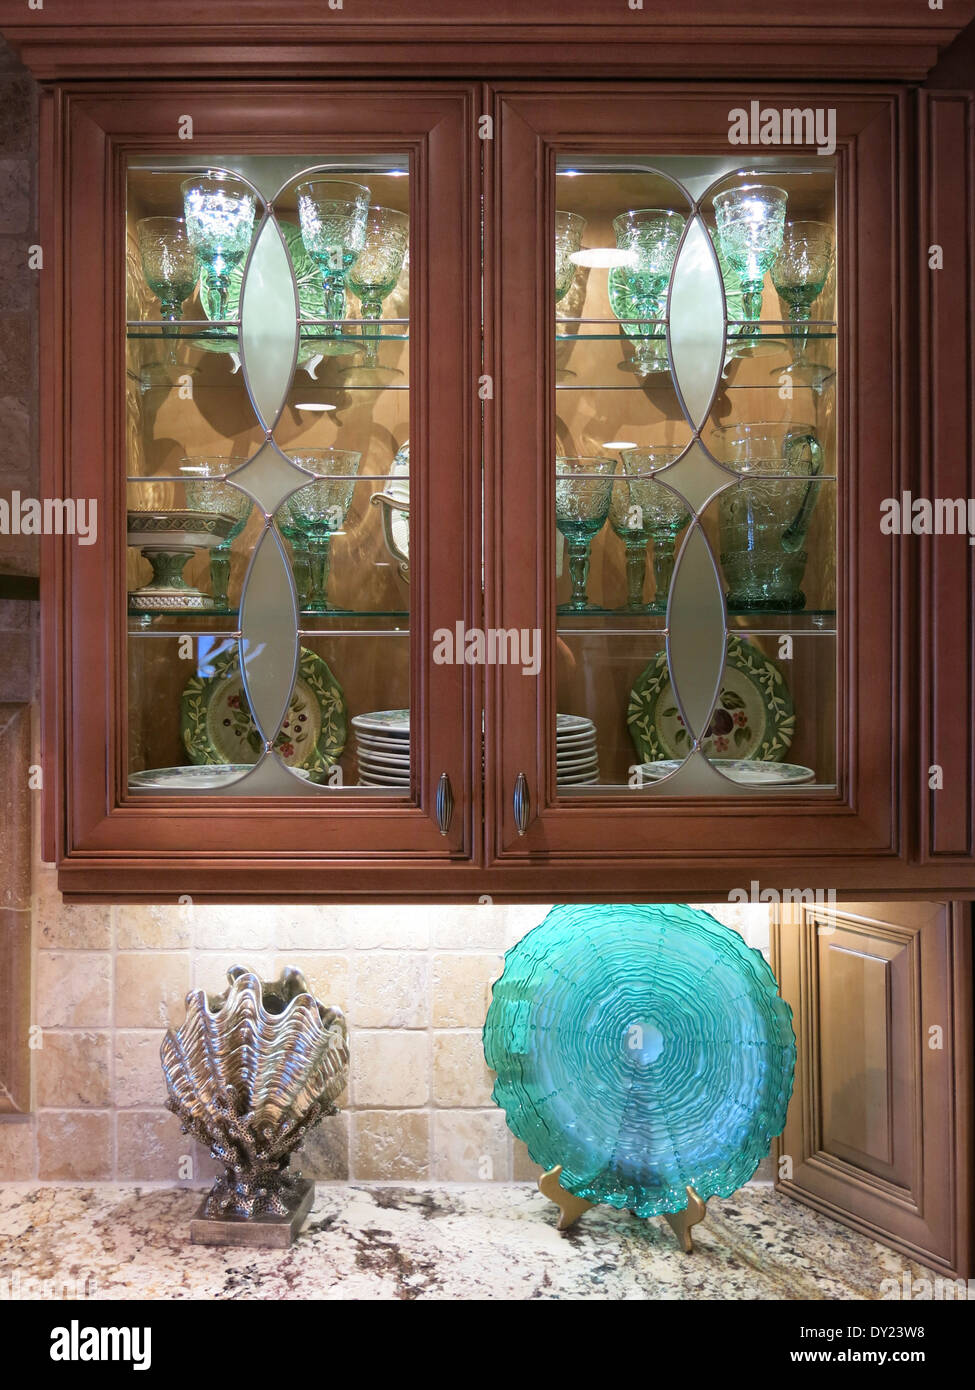 Luxury Etched Glass Front Kitchen Cabinet, USA Stock Photo ...